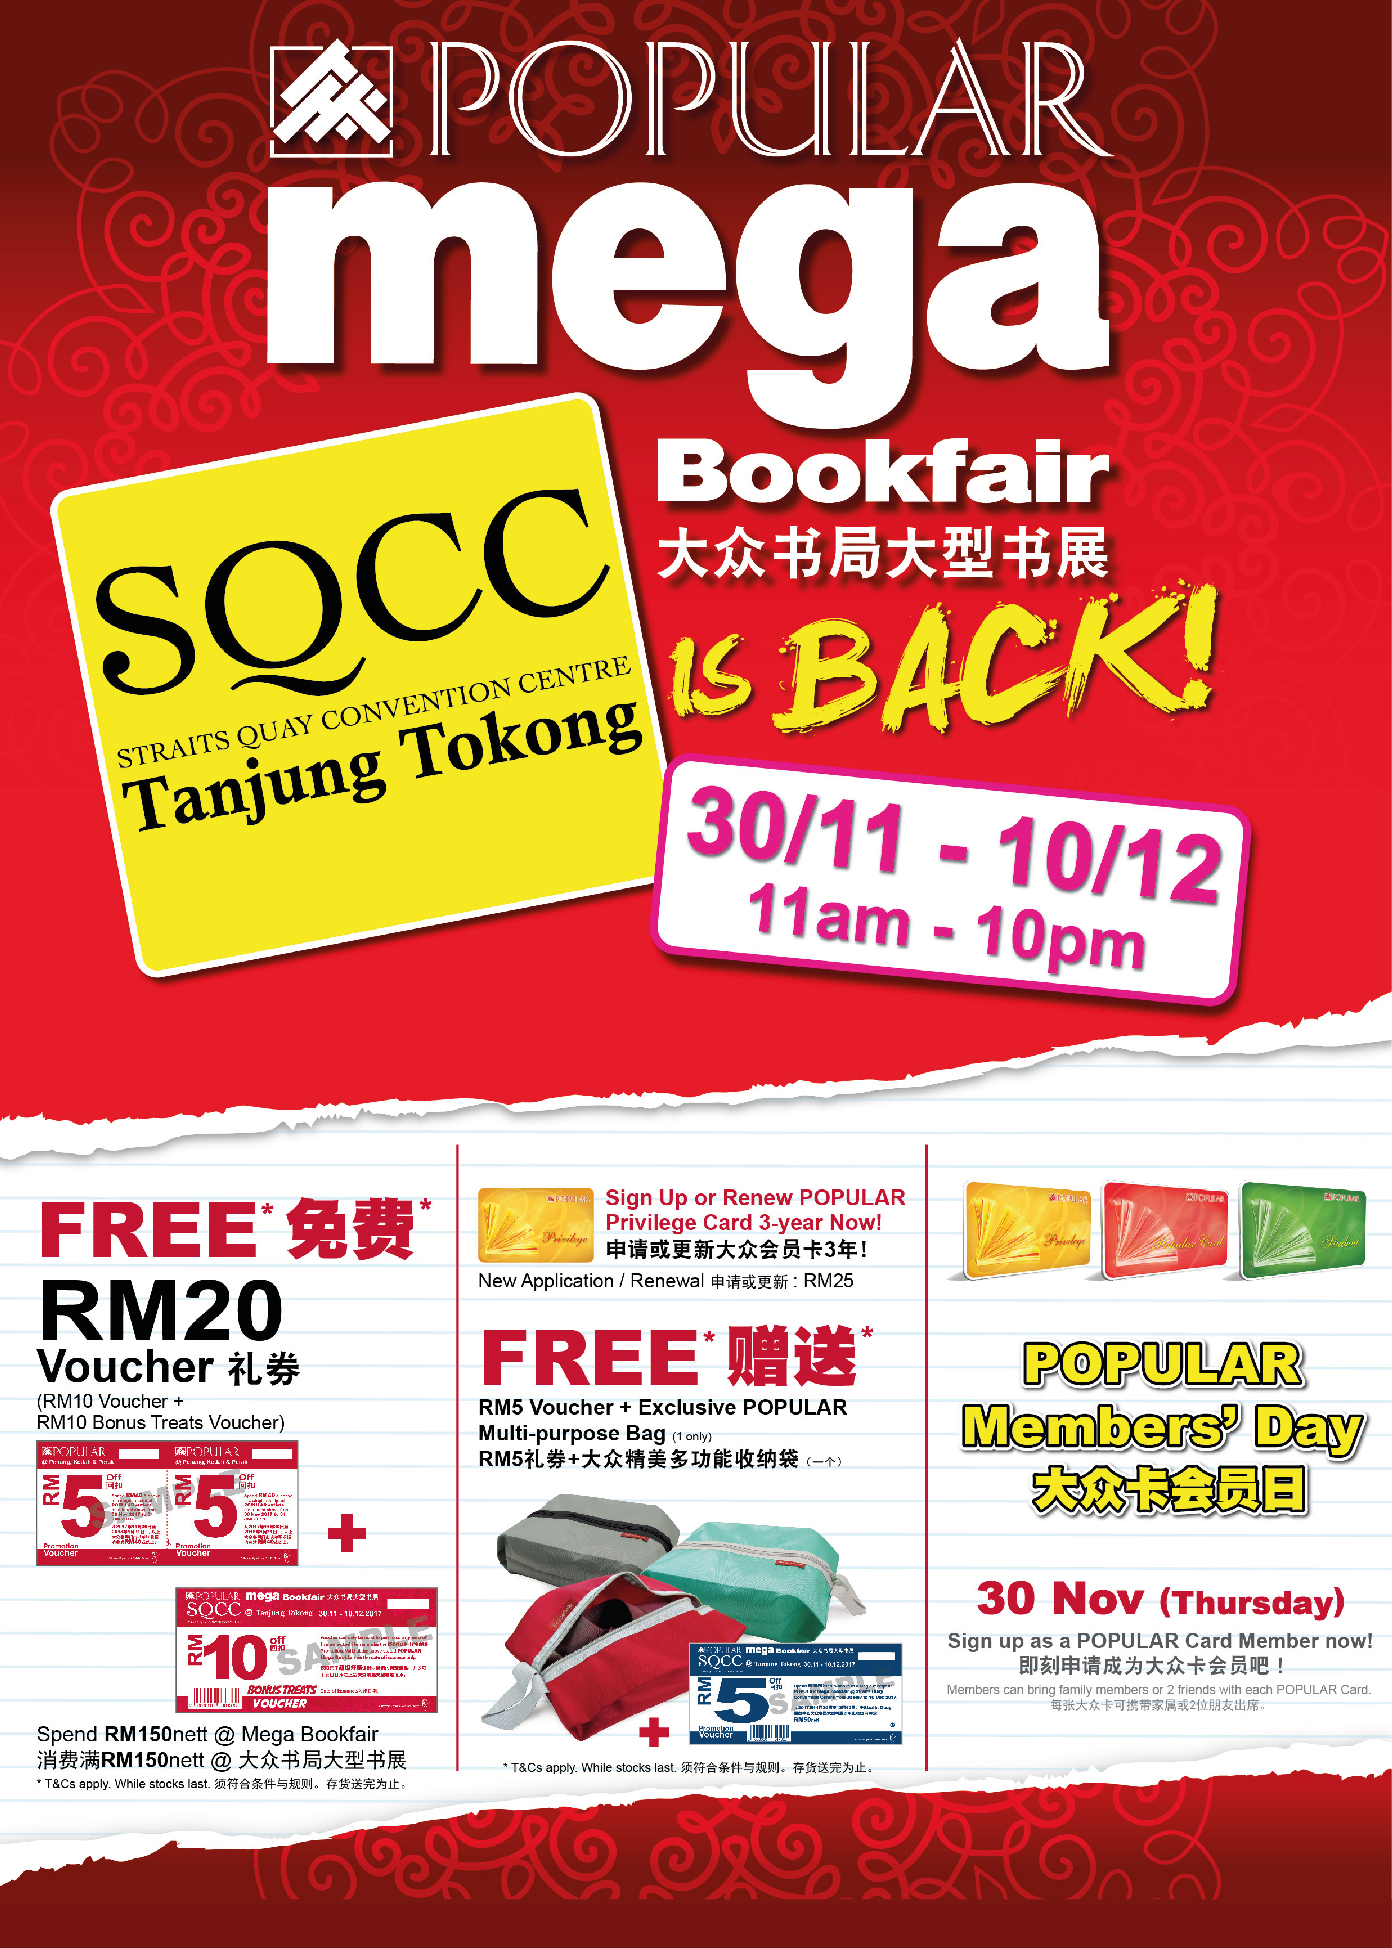 Popular Mega Bookfair @Straits Quay Convention Centre, Penang